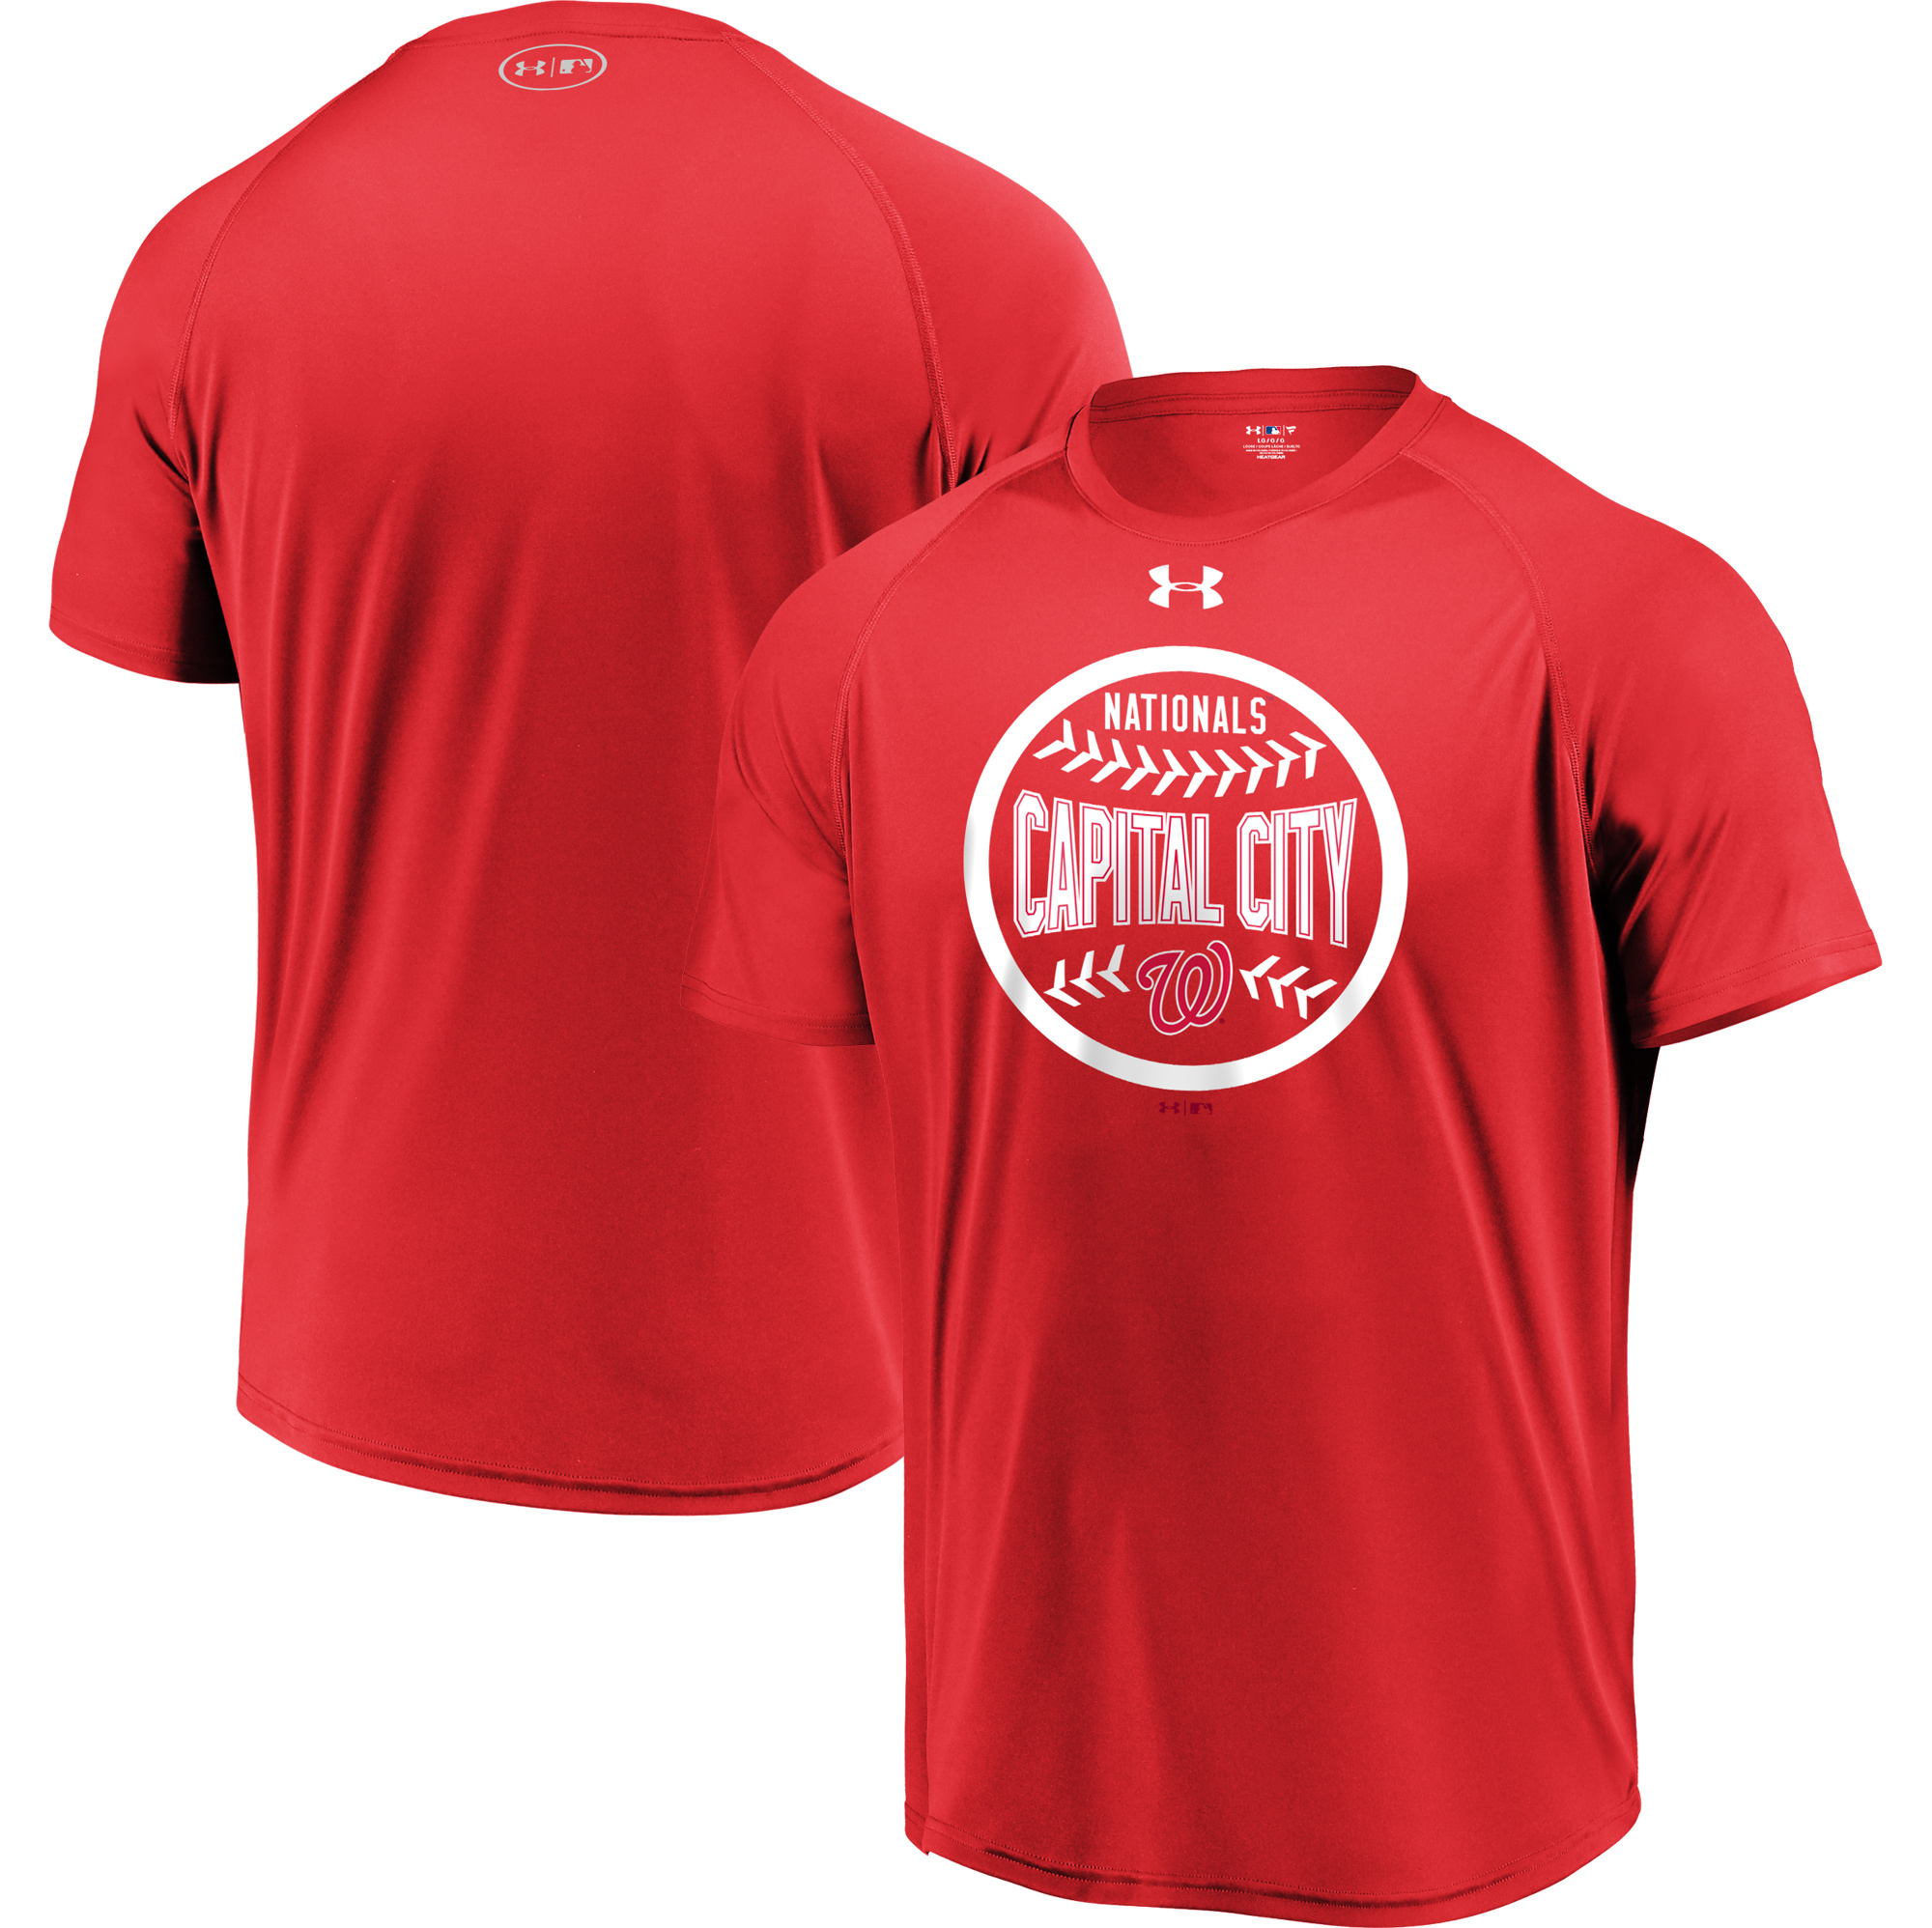 Washington Nationals Under Armour Intensity Ball Performance T-Shirt - Red